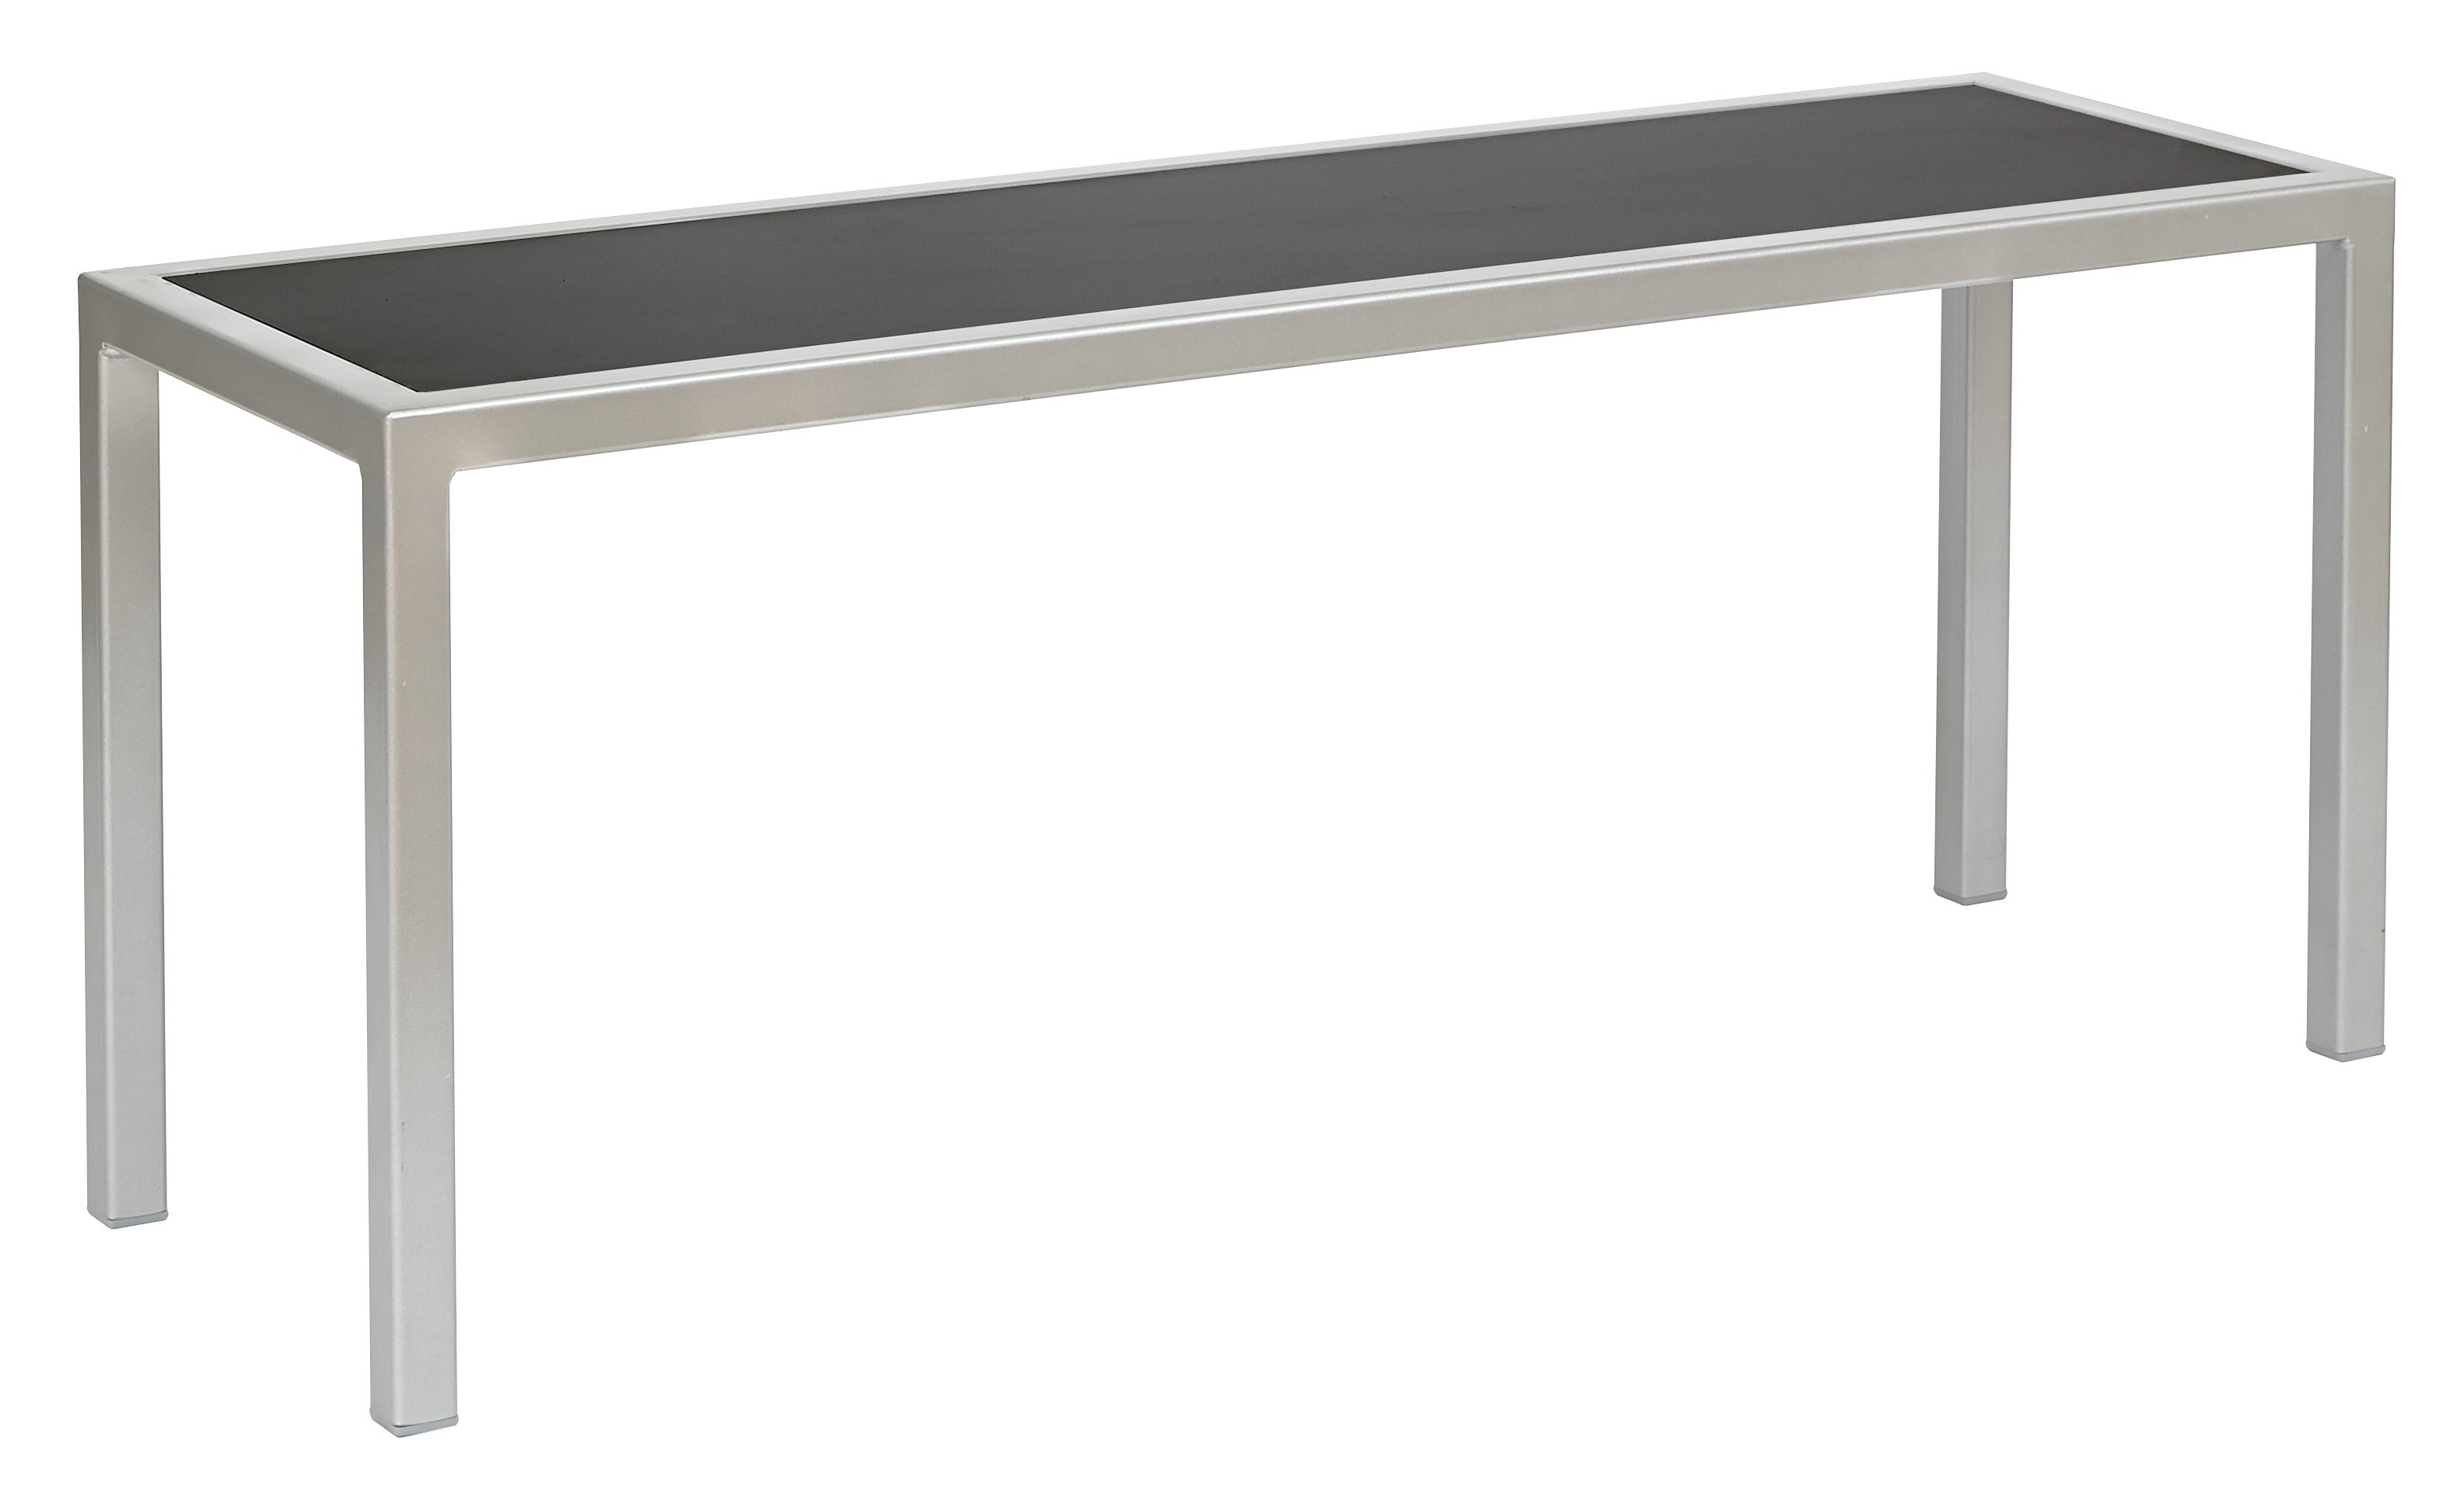 BREW HPL BENCH BLACK/SILVER